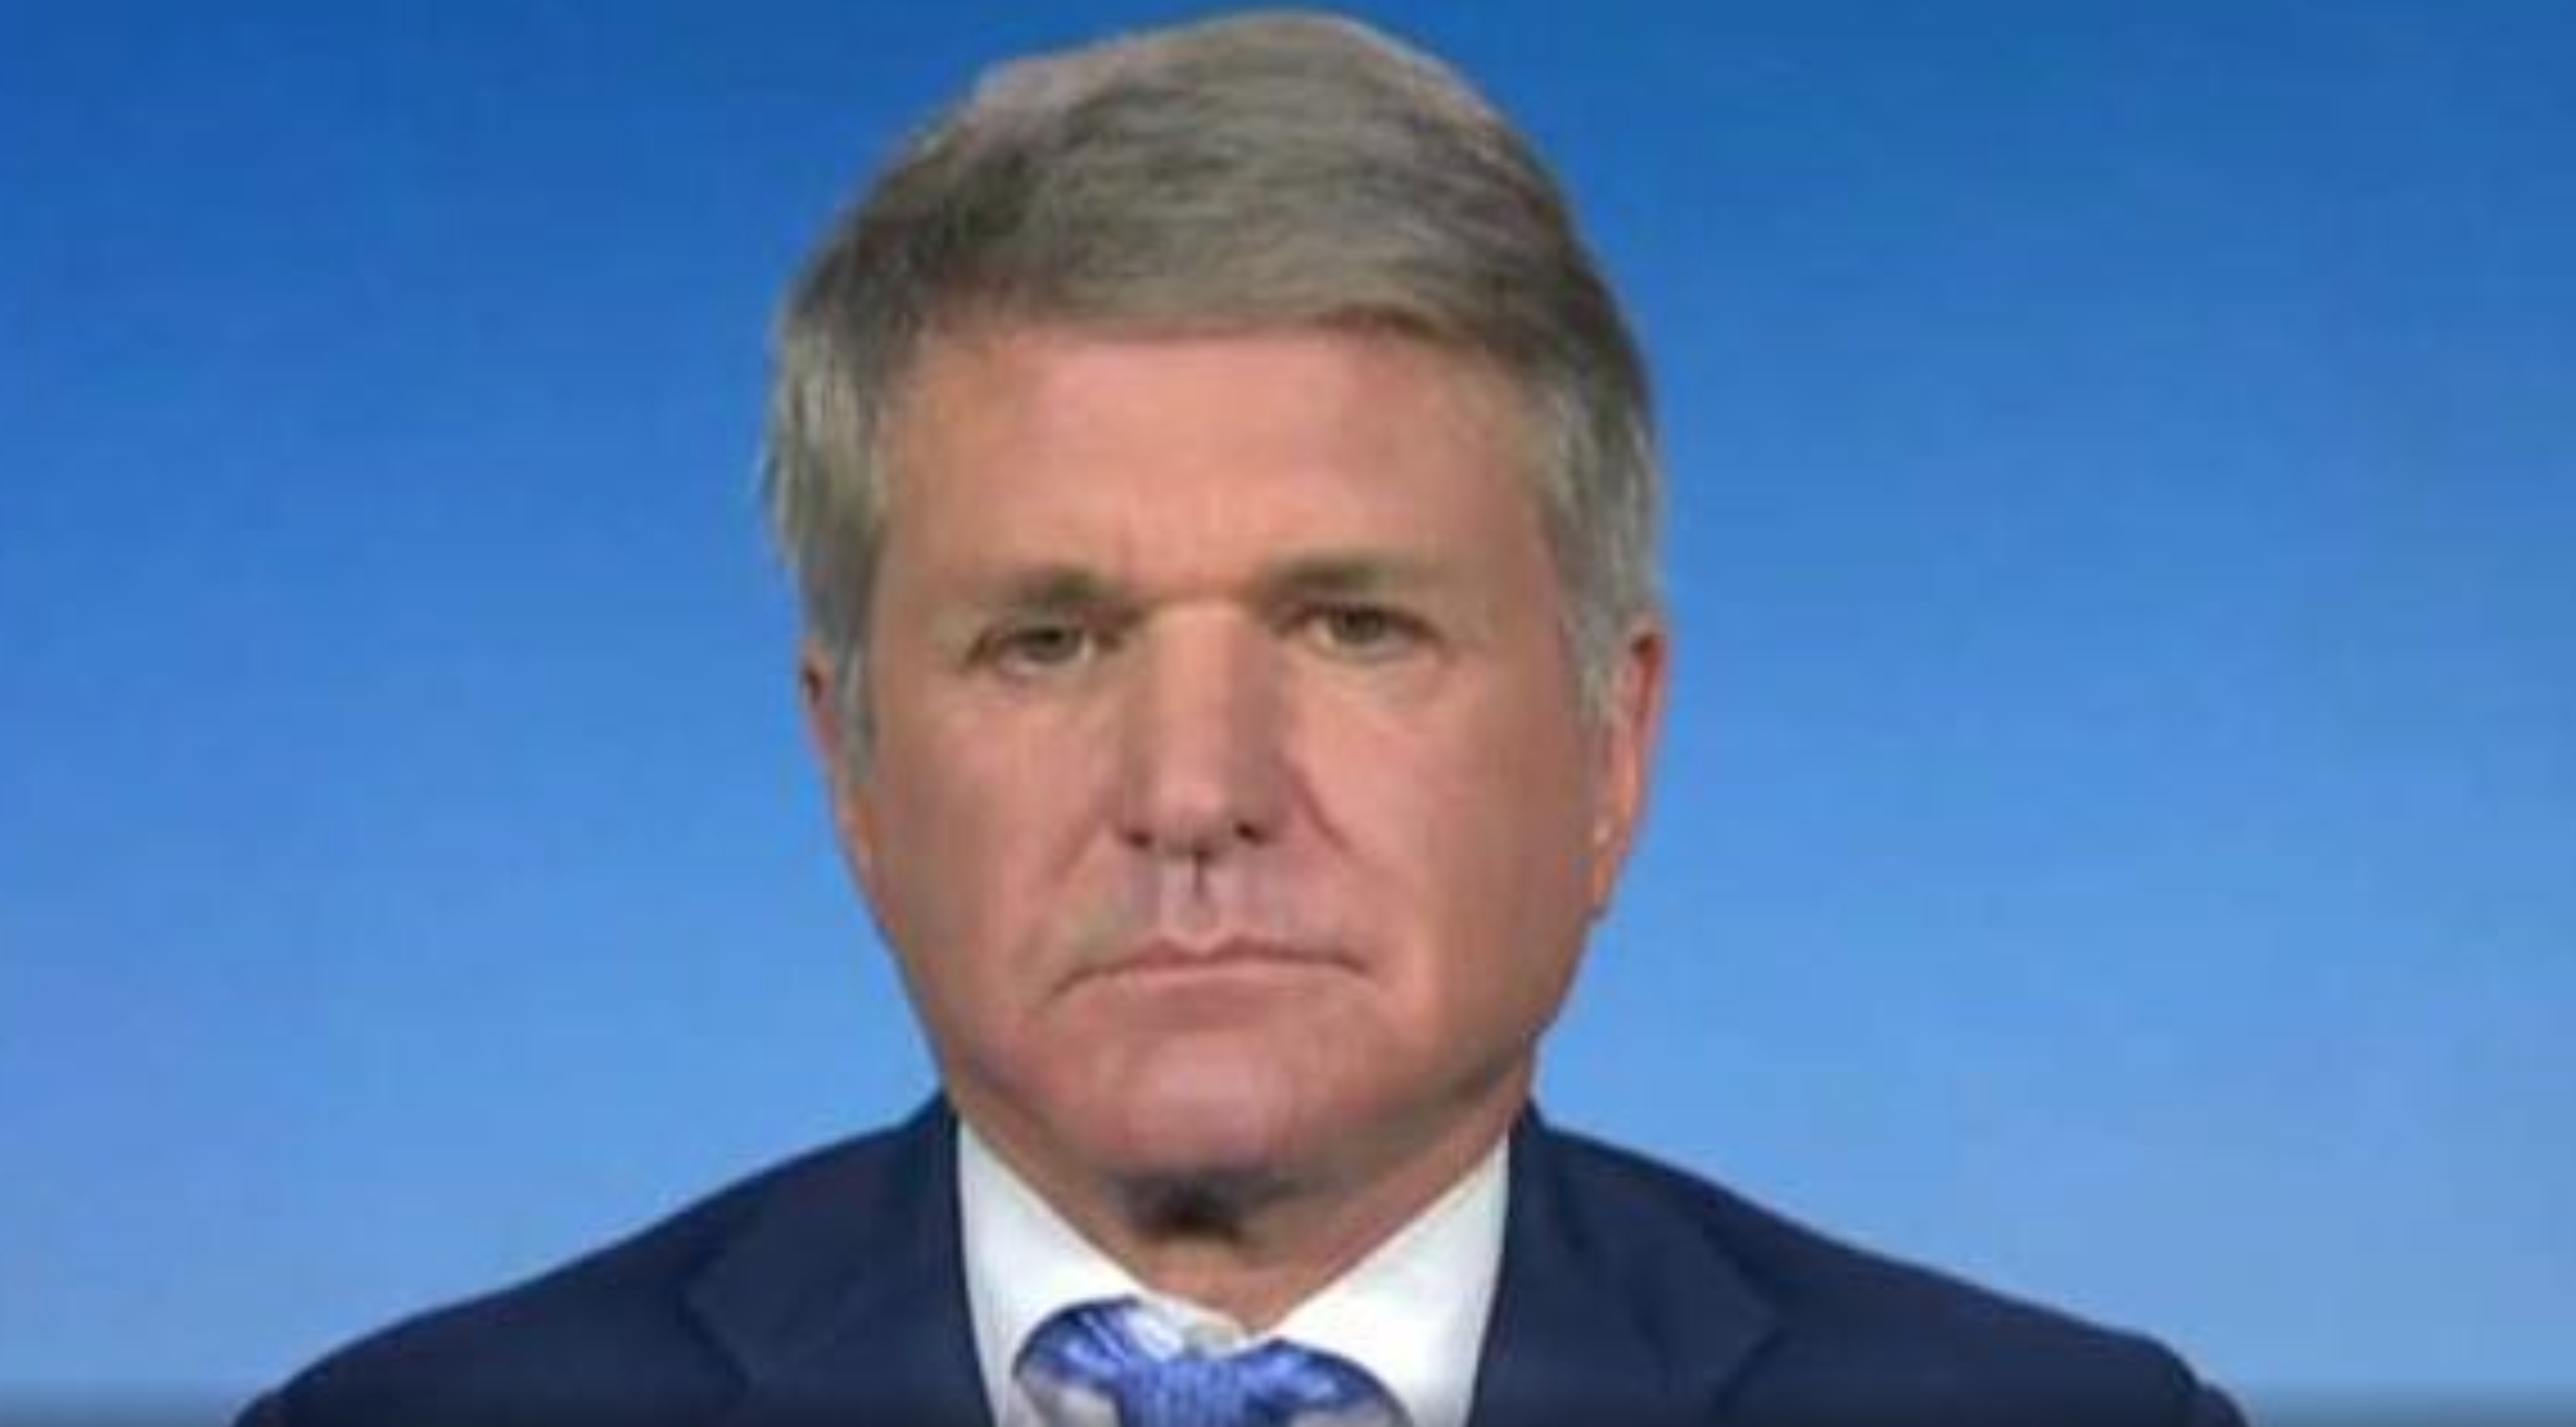 Westlake Legal Group Screen-Shot-2020-01-06-at-2.16.36-PM Rep. McCaul says there was 'clear' intelligence Soleimani was planning attack on Americans Joshua Nelson fox-news/world/conflicts/iran fox-news/shows/outnumbered-overtime fox-news/media/fox-news-flash fox news fnc/media fnc article 21b3ec83-d53e-5119-83cc-328daa0b71cd